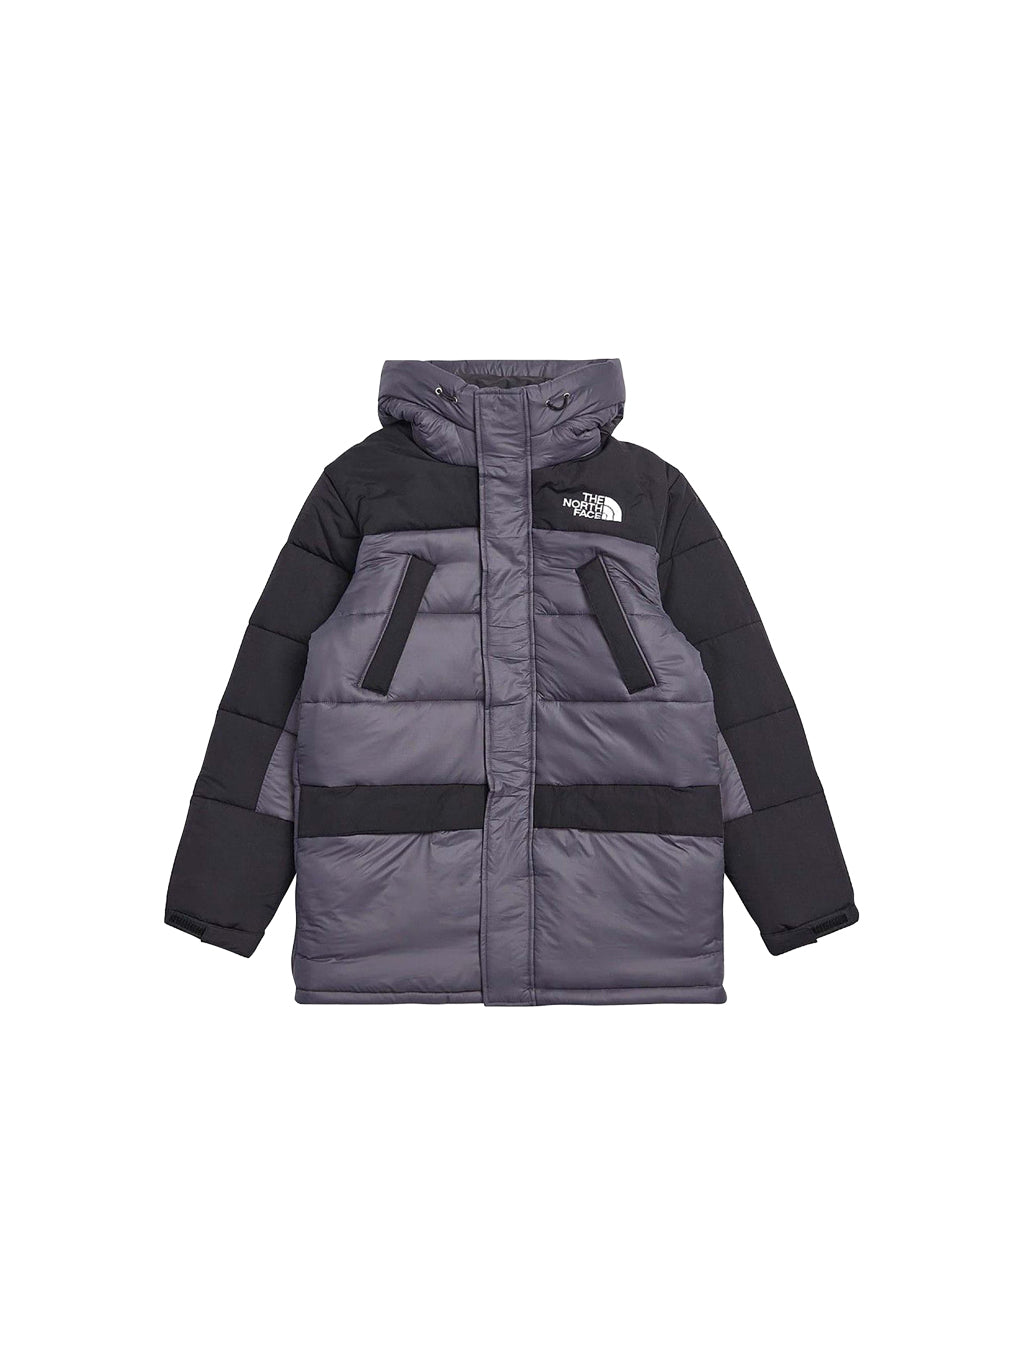 Gray Himalayan Insulated Parka Jacket